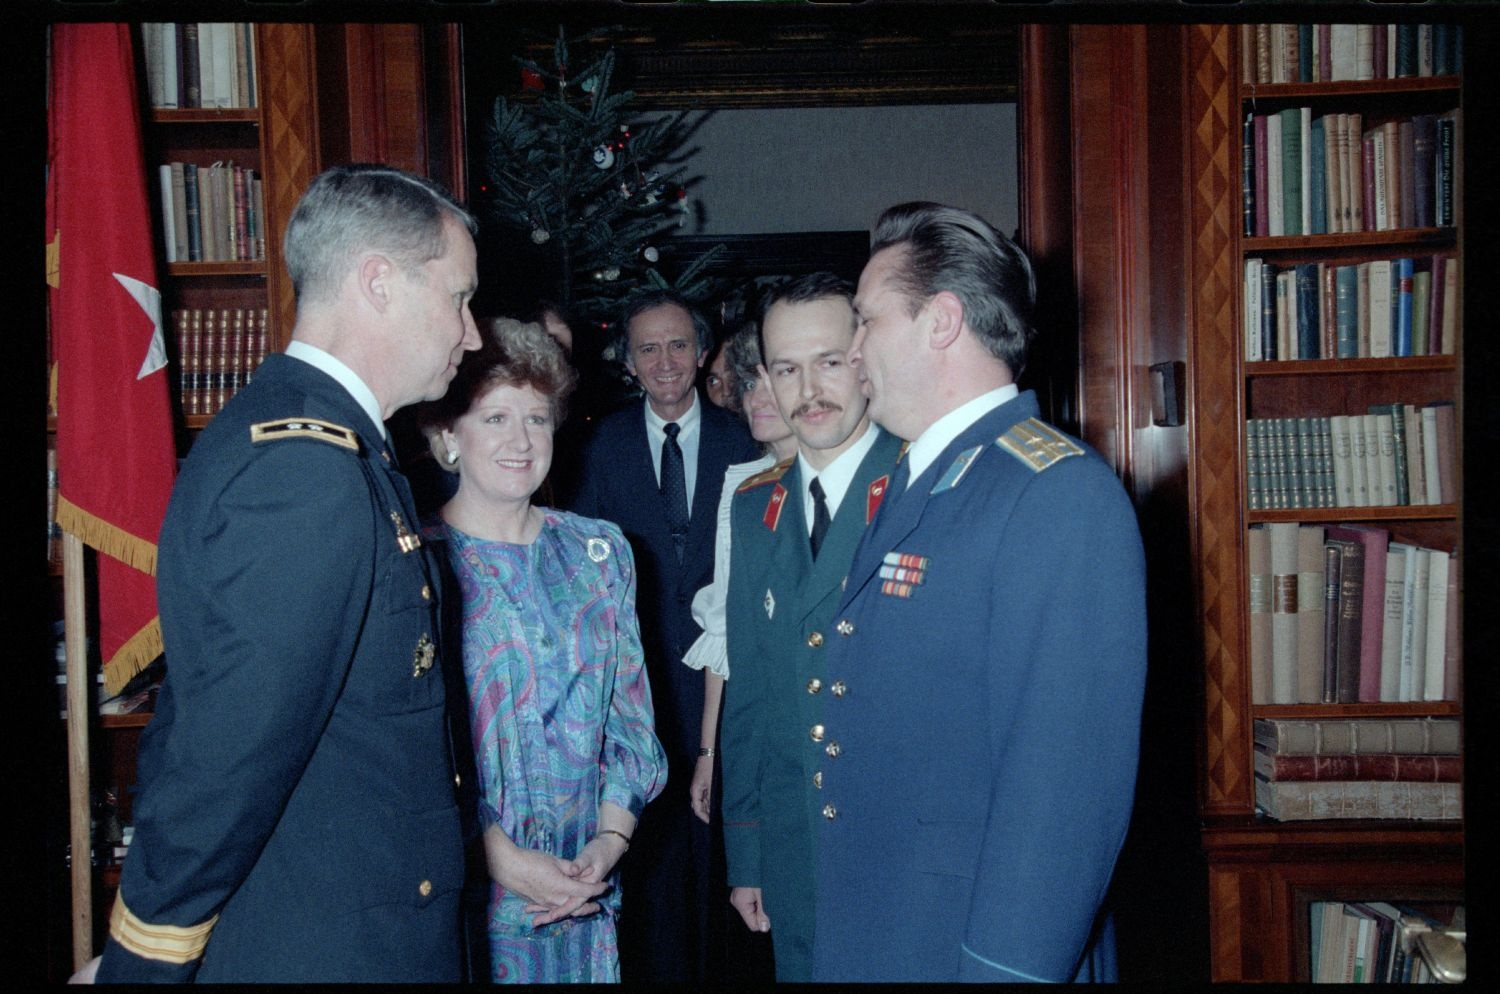 Fotografie: Weihnachtsempfang bei US-Stadtkommandant Major General John H. Mitchell in seiner Residenz in Berlin-Dahlem (AlliiertenMuseum/U.S. Army Photograph Public Domain Mark)